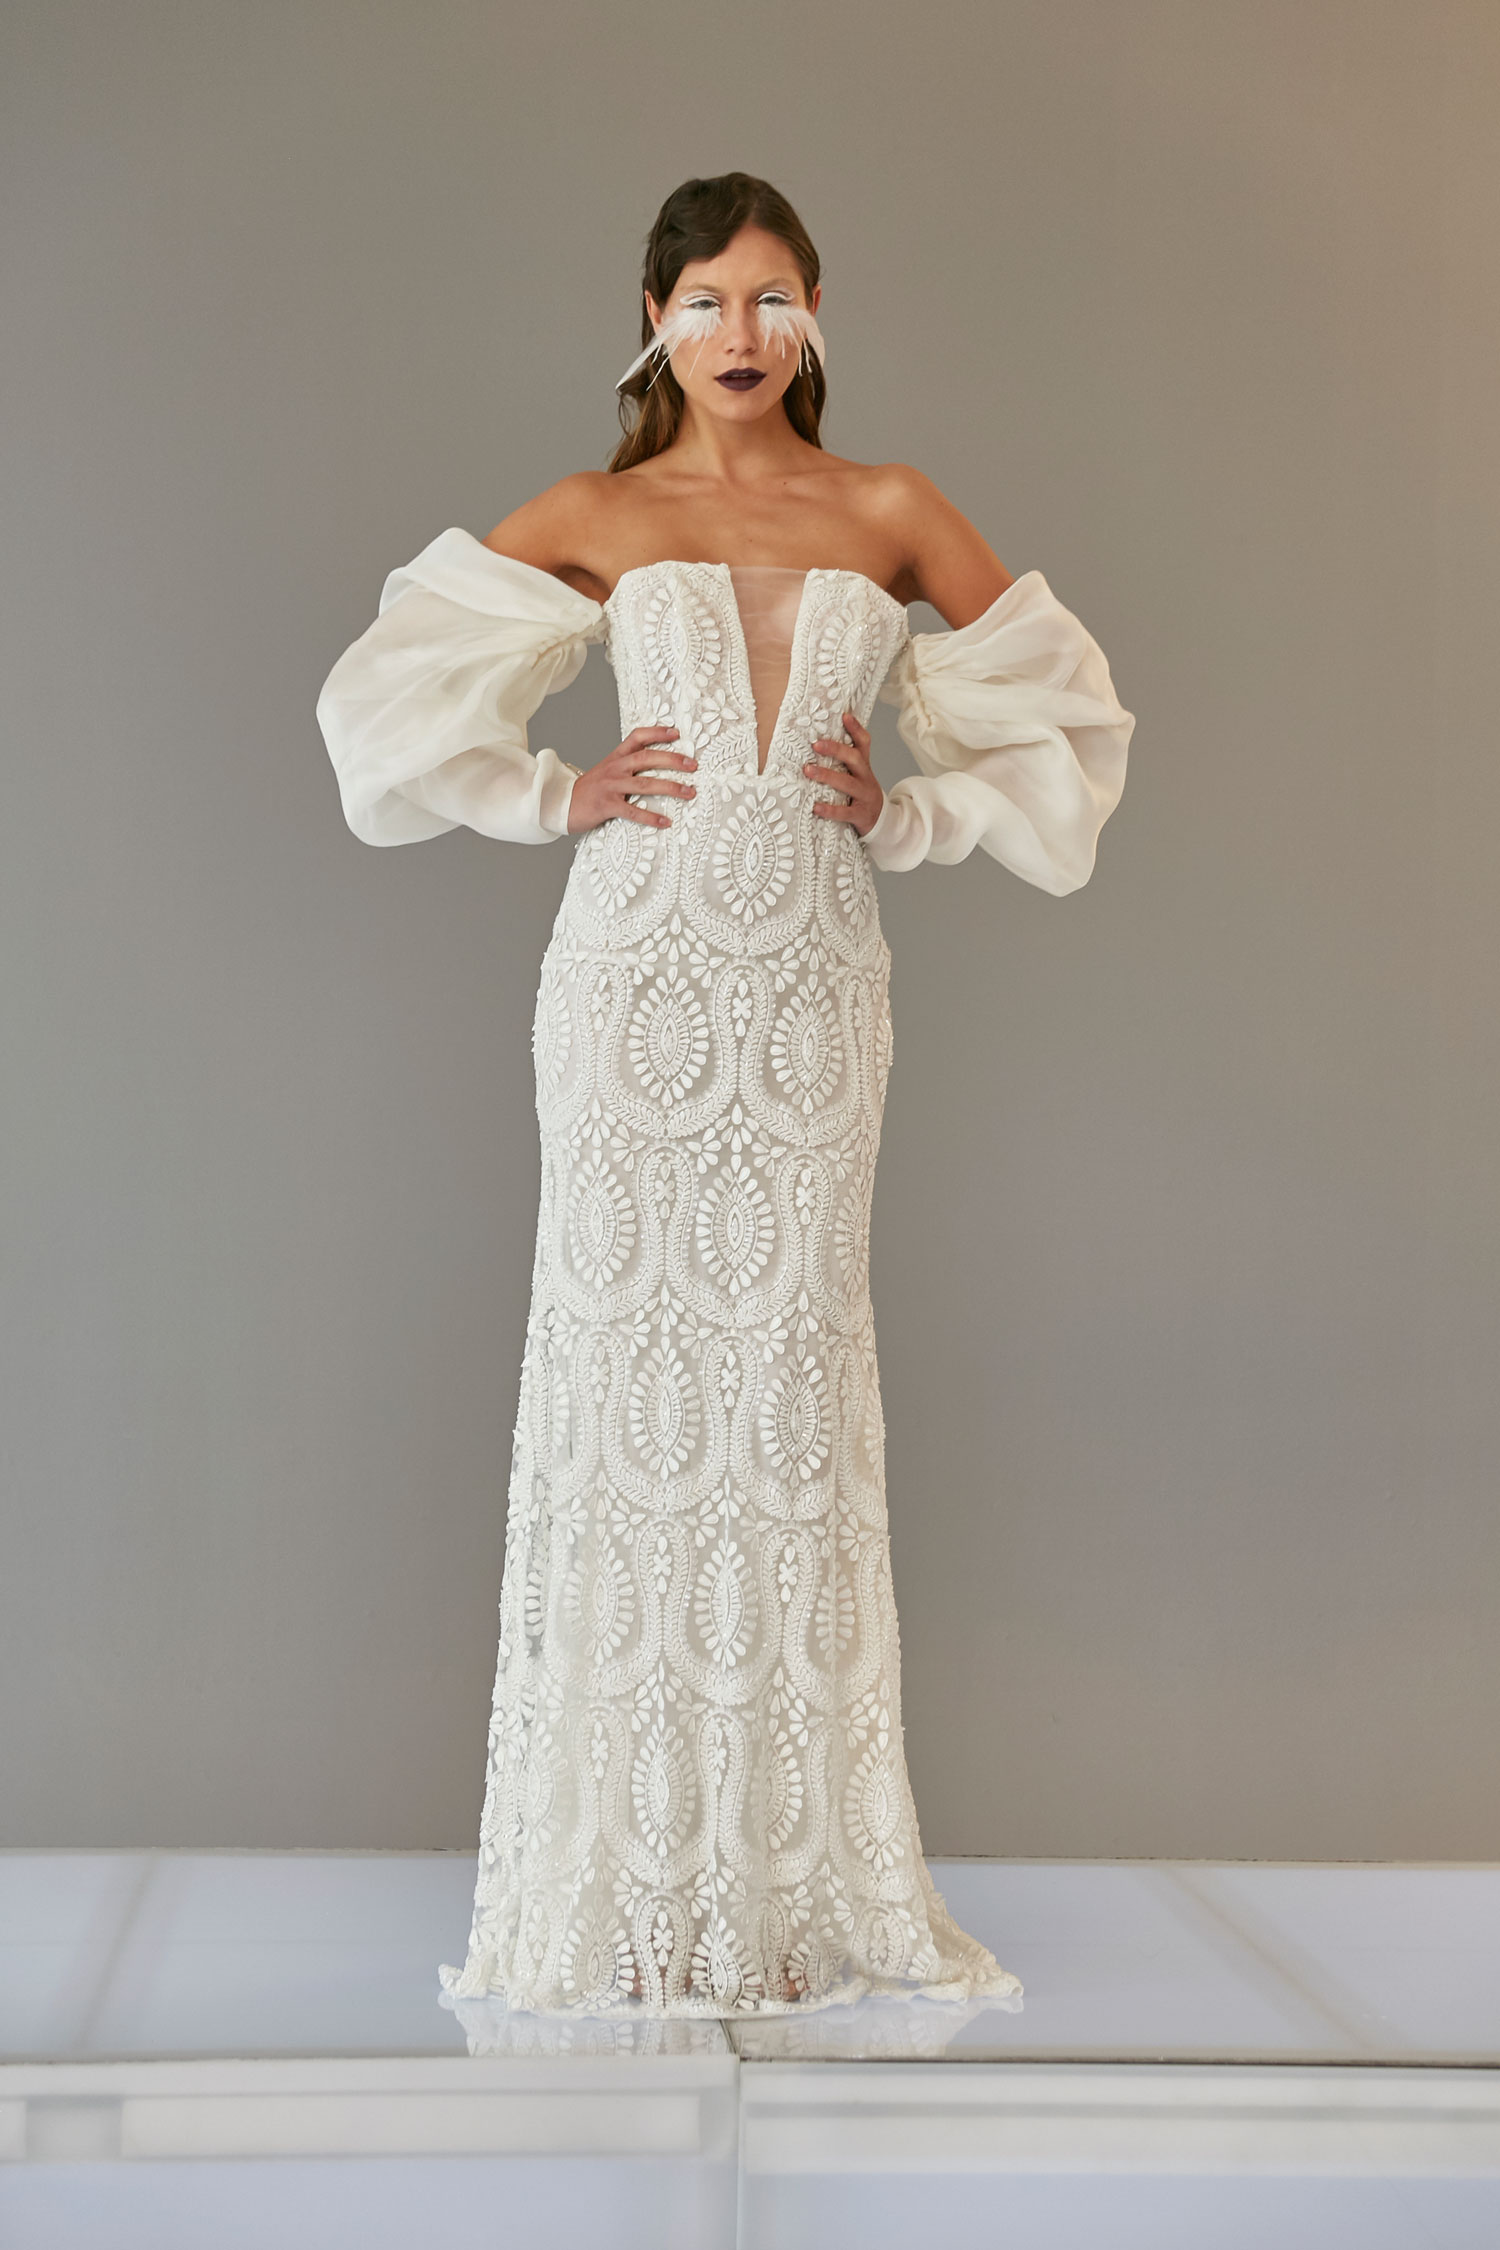 Lucy wedding dress with statement sleeves puffy sleeves off shoulder by Francesca Miranda